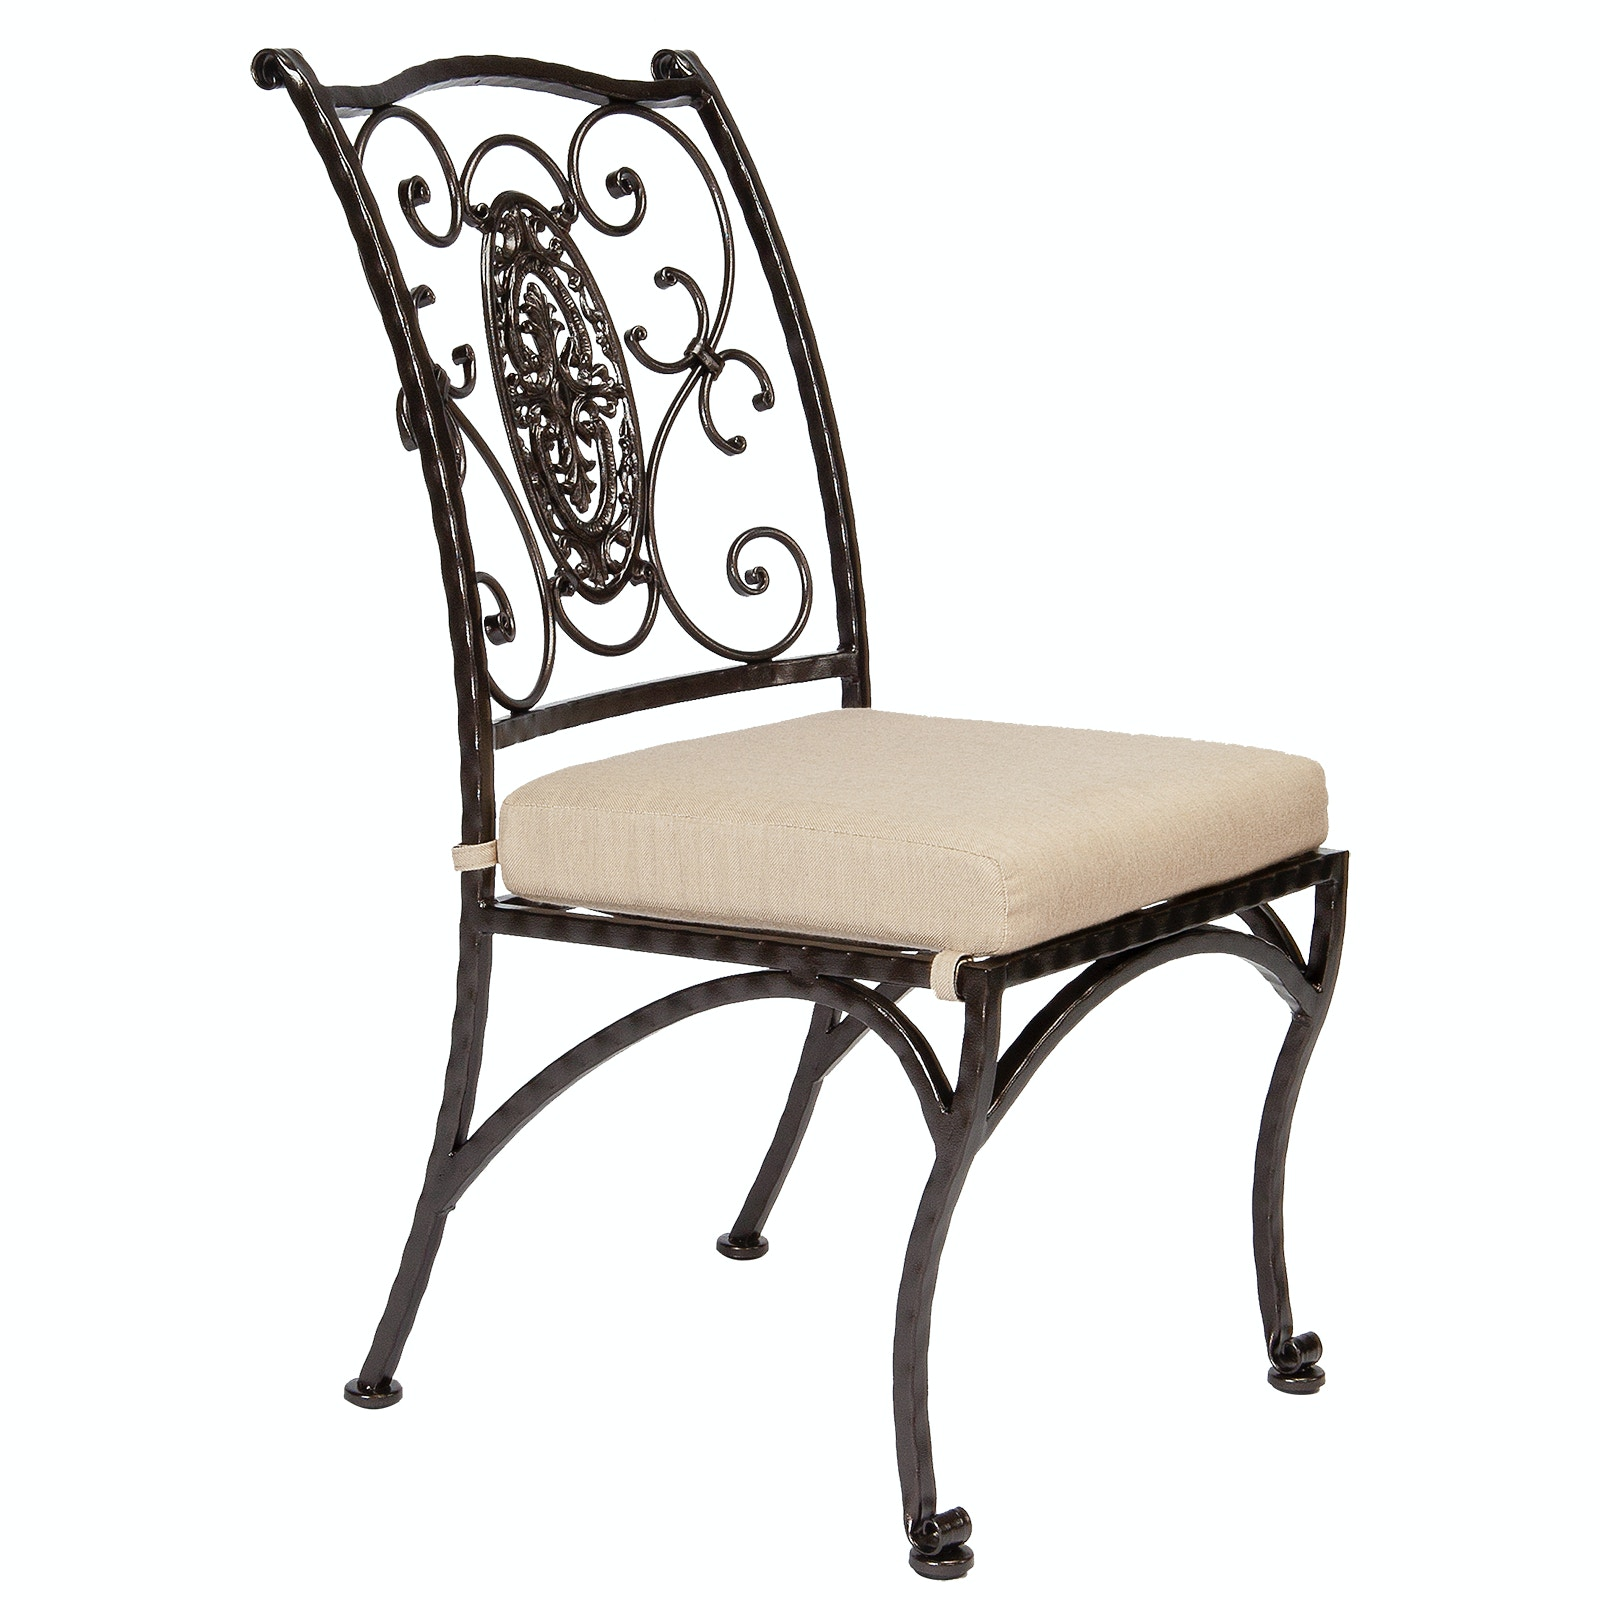 OW Lee Furniture San Cristobal Dining Side Chair 651 S